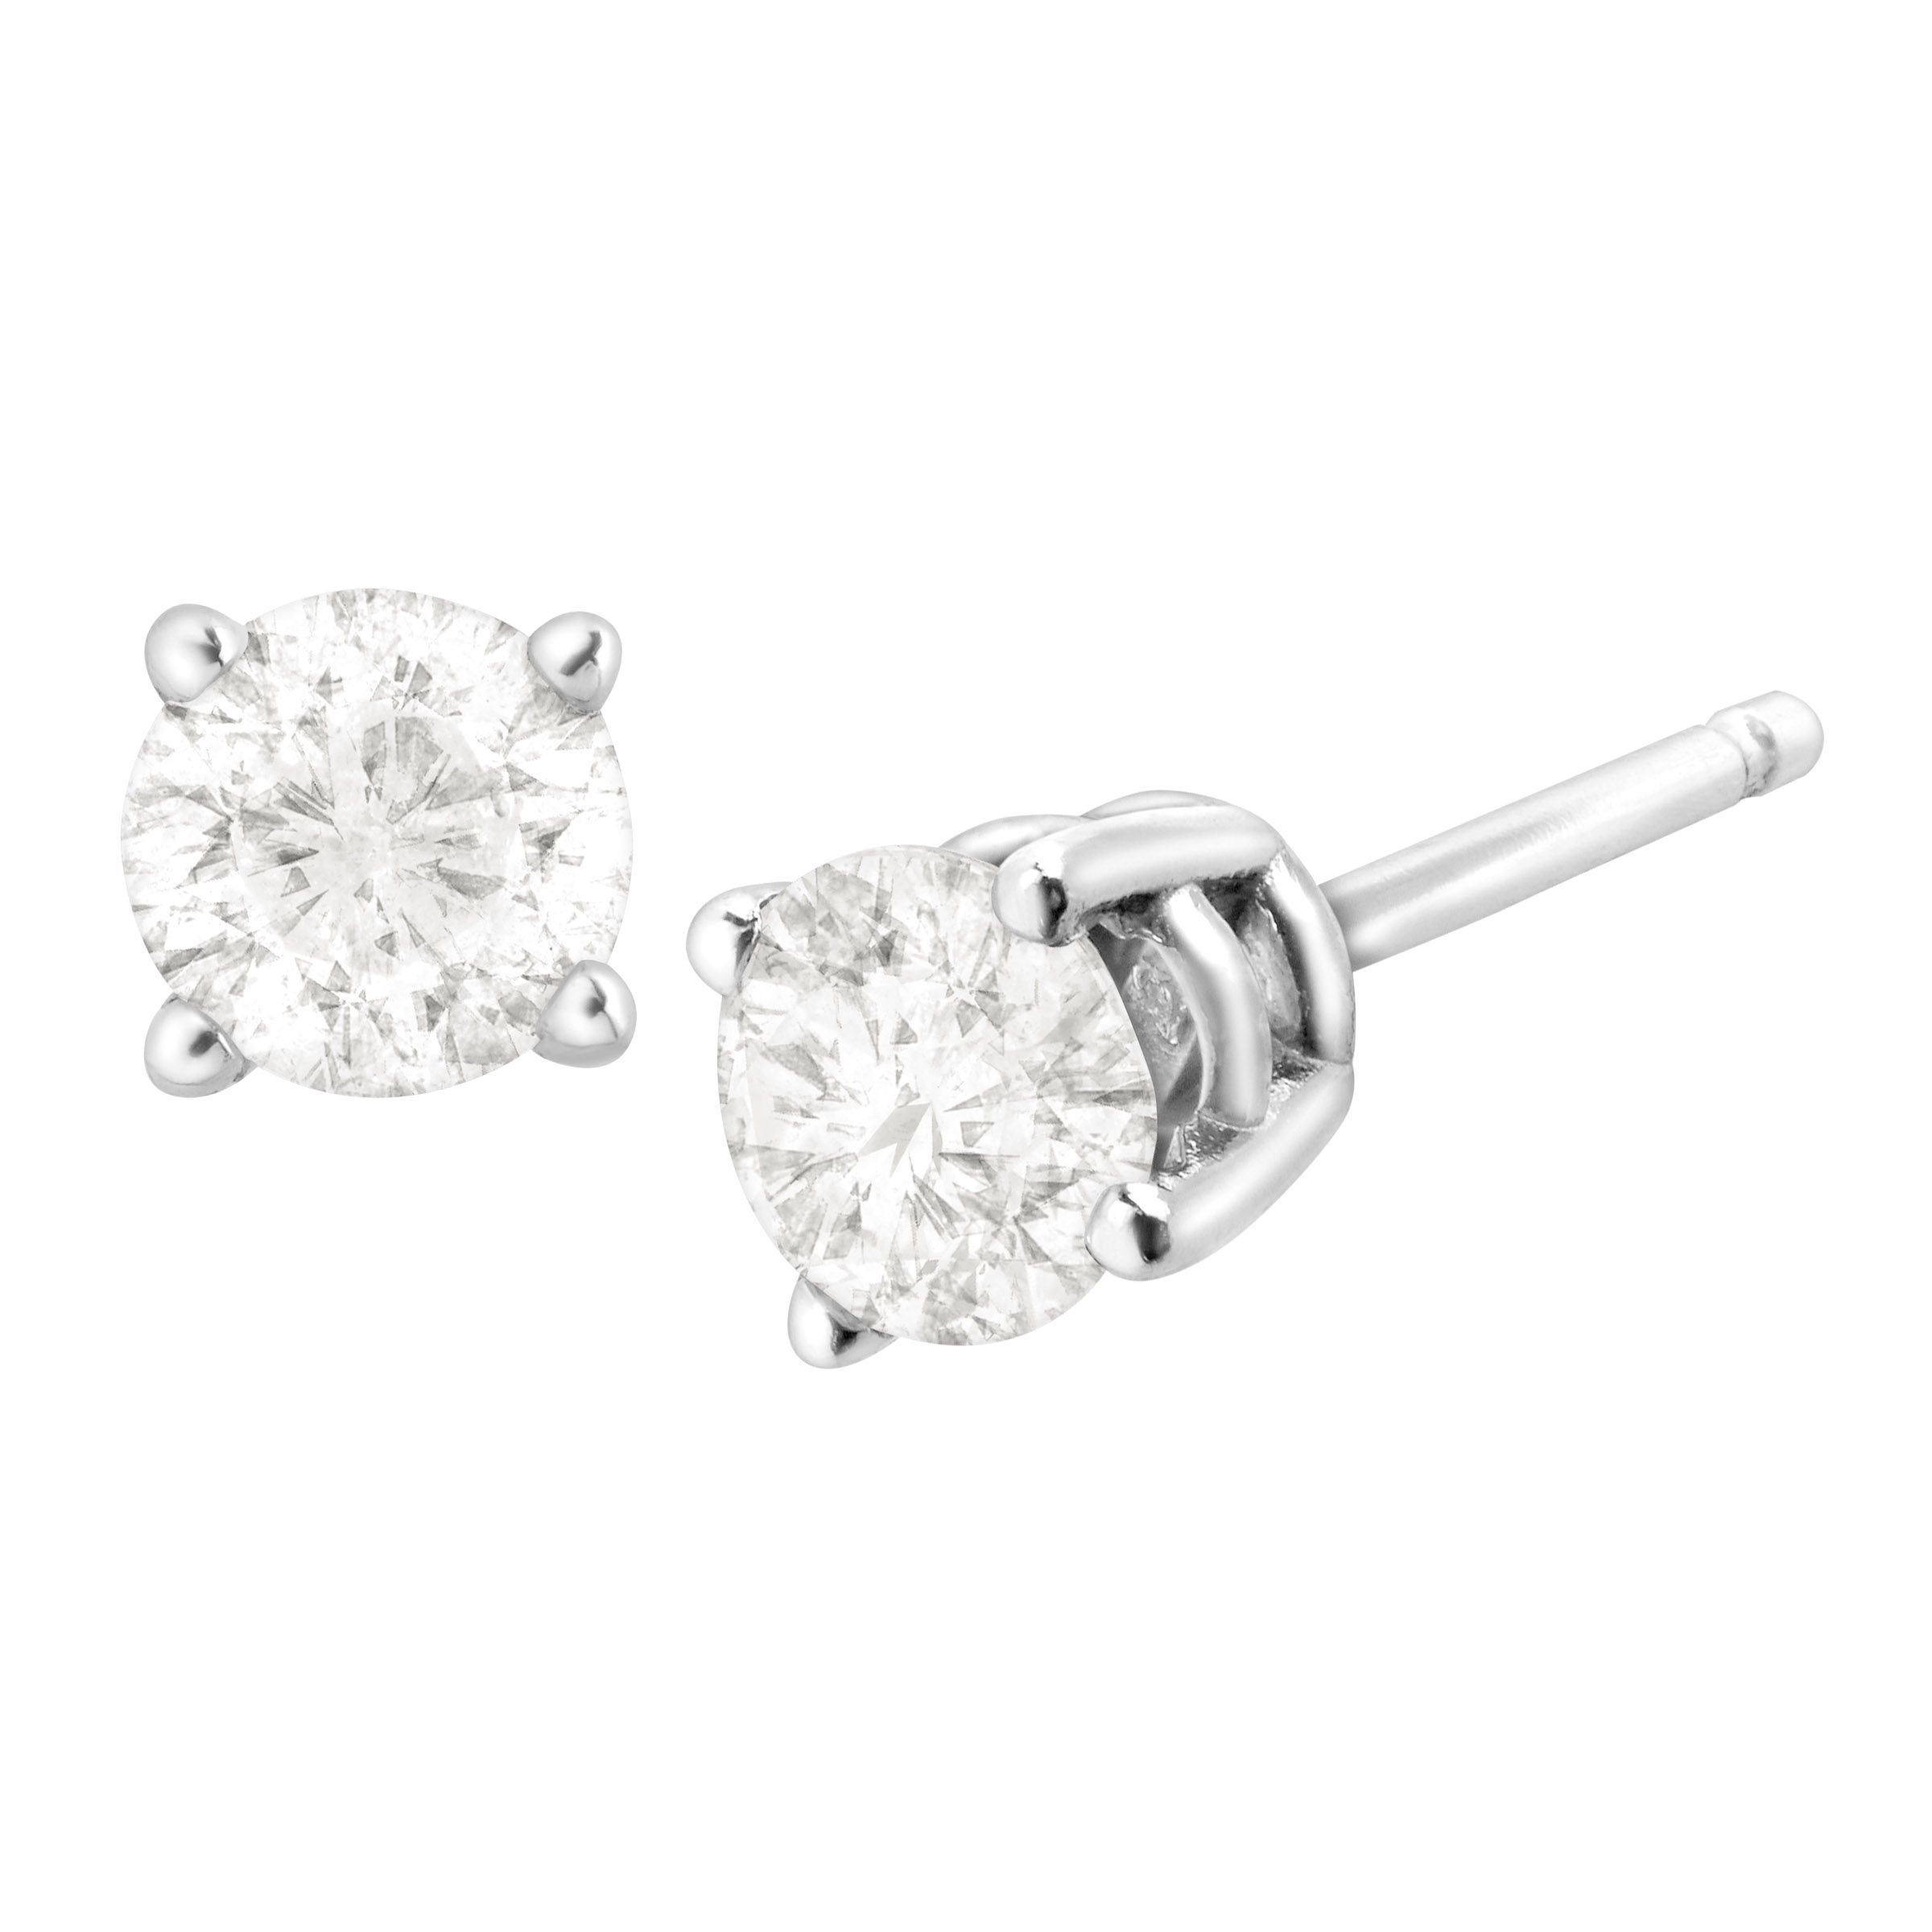 jewellery brilliantcut classic brilliant earrings aurora diamond cut claw studearrings stud